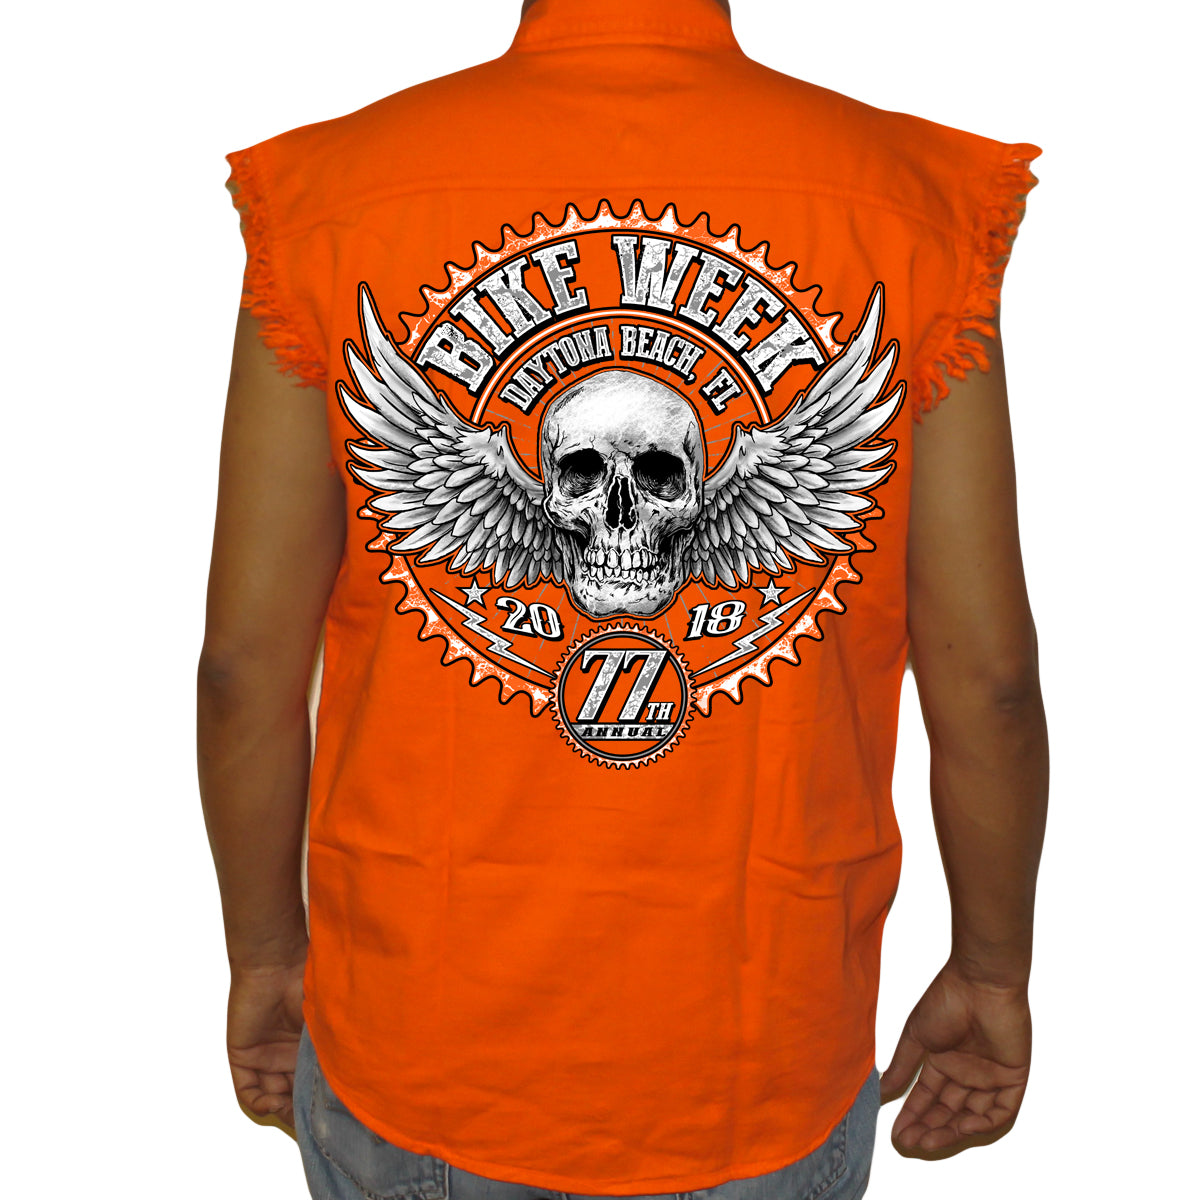 866685dad1 2018 Bike Week Daytona Beach Gearhead Cut-Off Denim – Biker Life ...